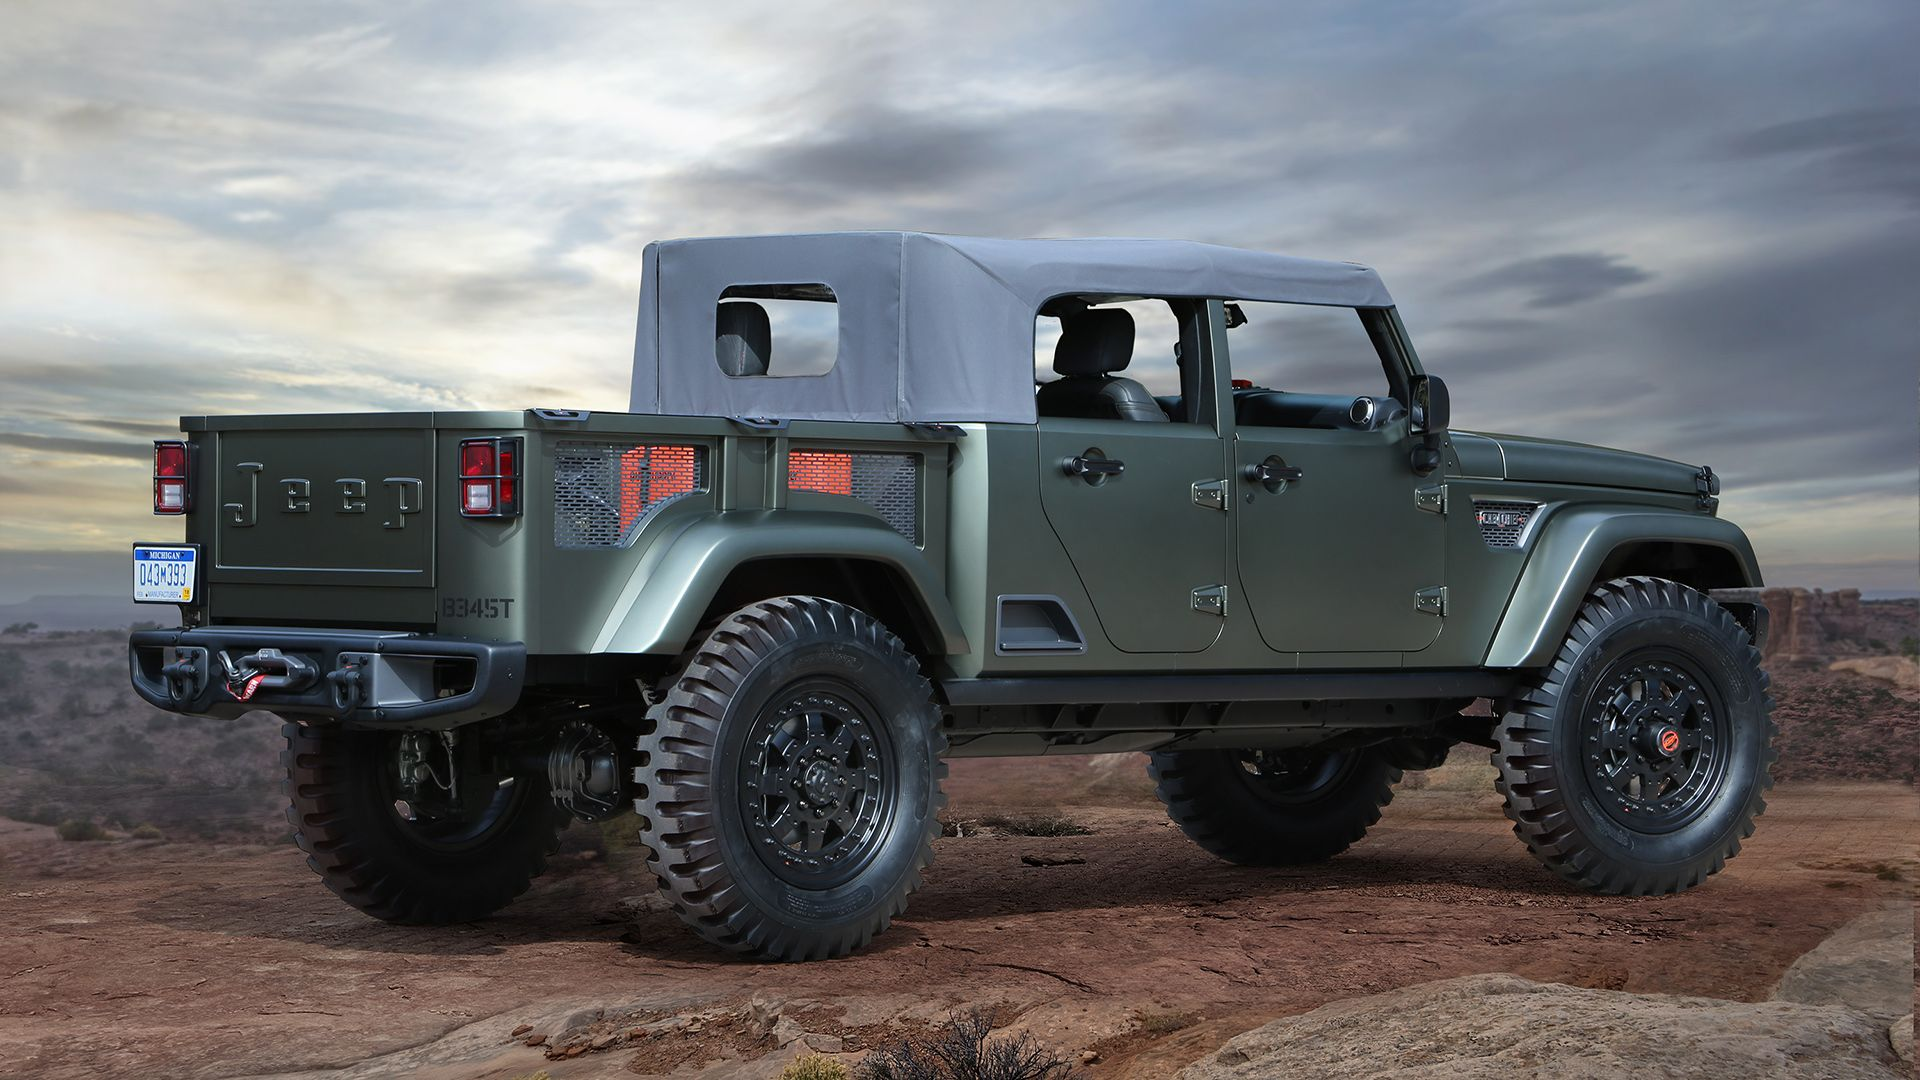 2019 Jeep Wrangler Pickup Truck To Feature Convertible Soft Top Report Says Jeep Concept Jeep Wrangler Pickup Wrangler Pickup